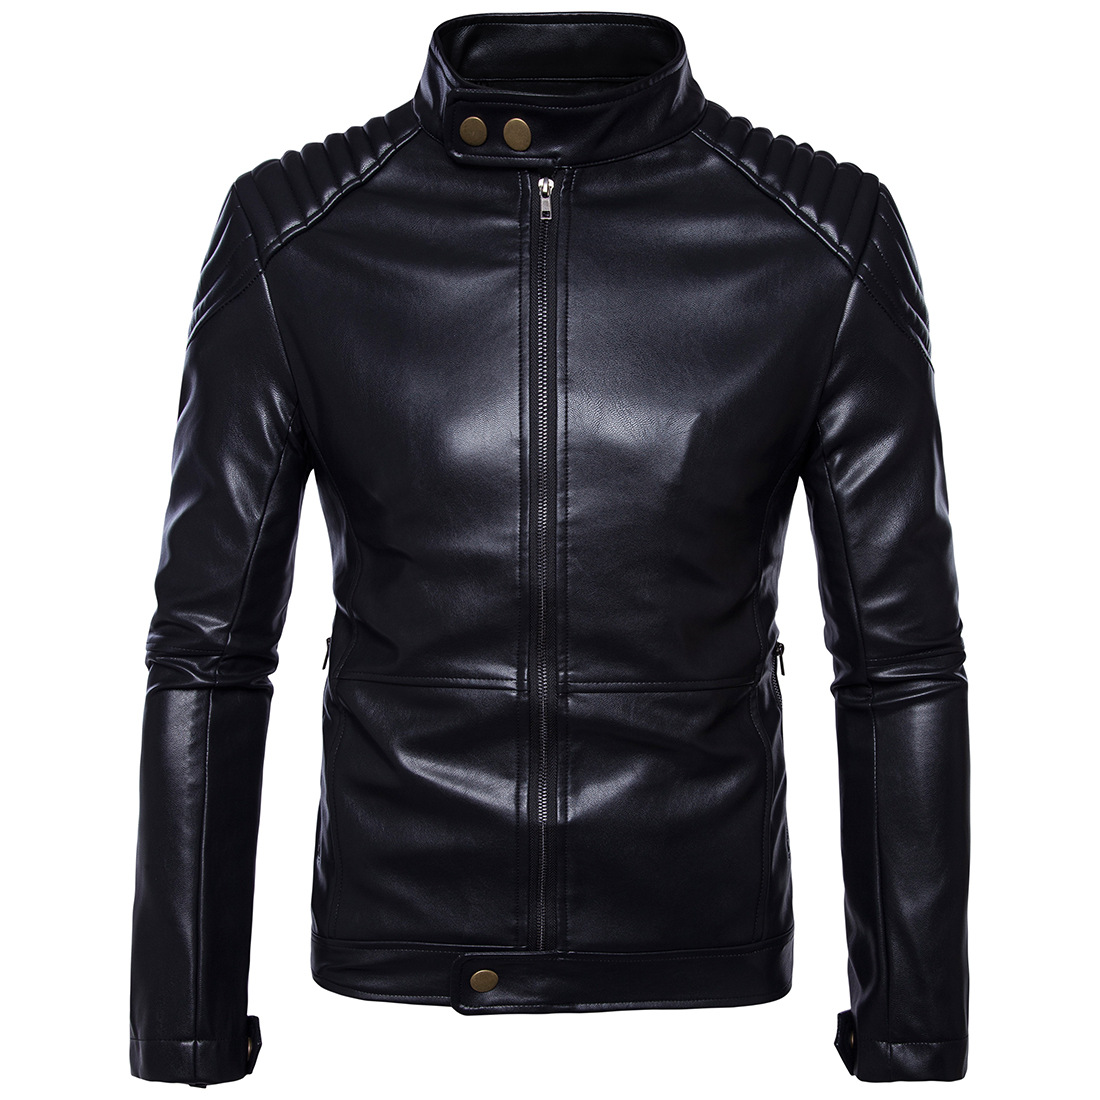 New Retro Motorcycle Jacket Vintage PU Leather Stand Collar Classic Punk Biker Moto Jacket Slim Biking Riding Jaqueta Motoqueiro pu leather spliced stand collar zip up jacket